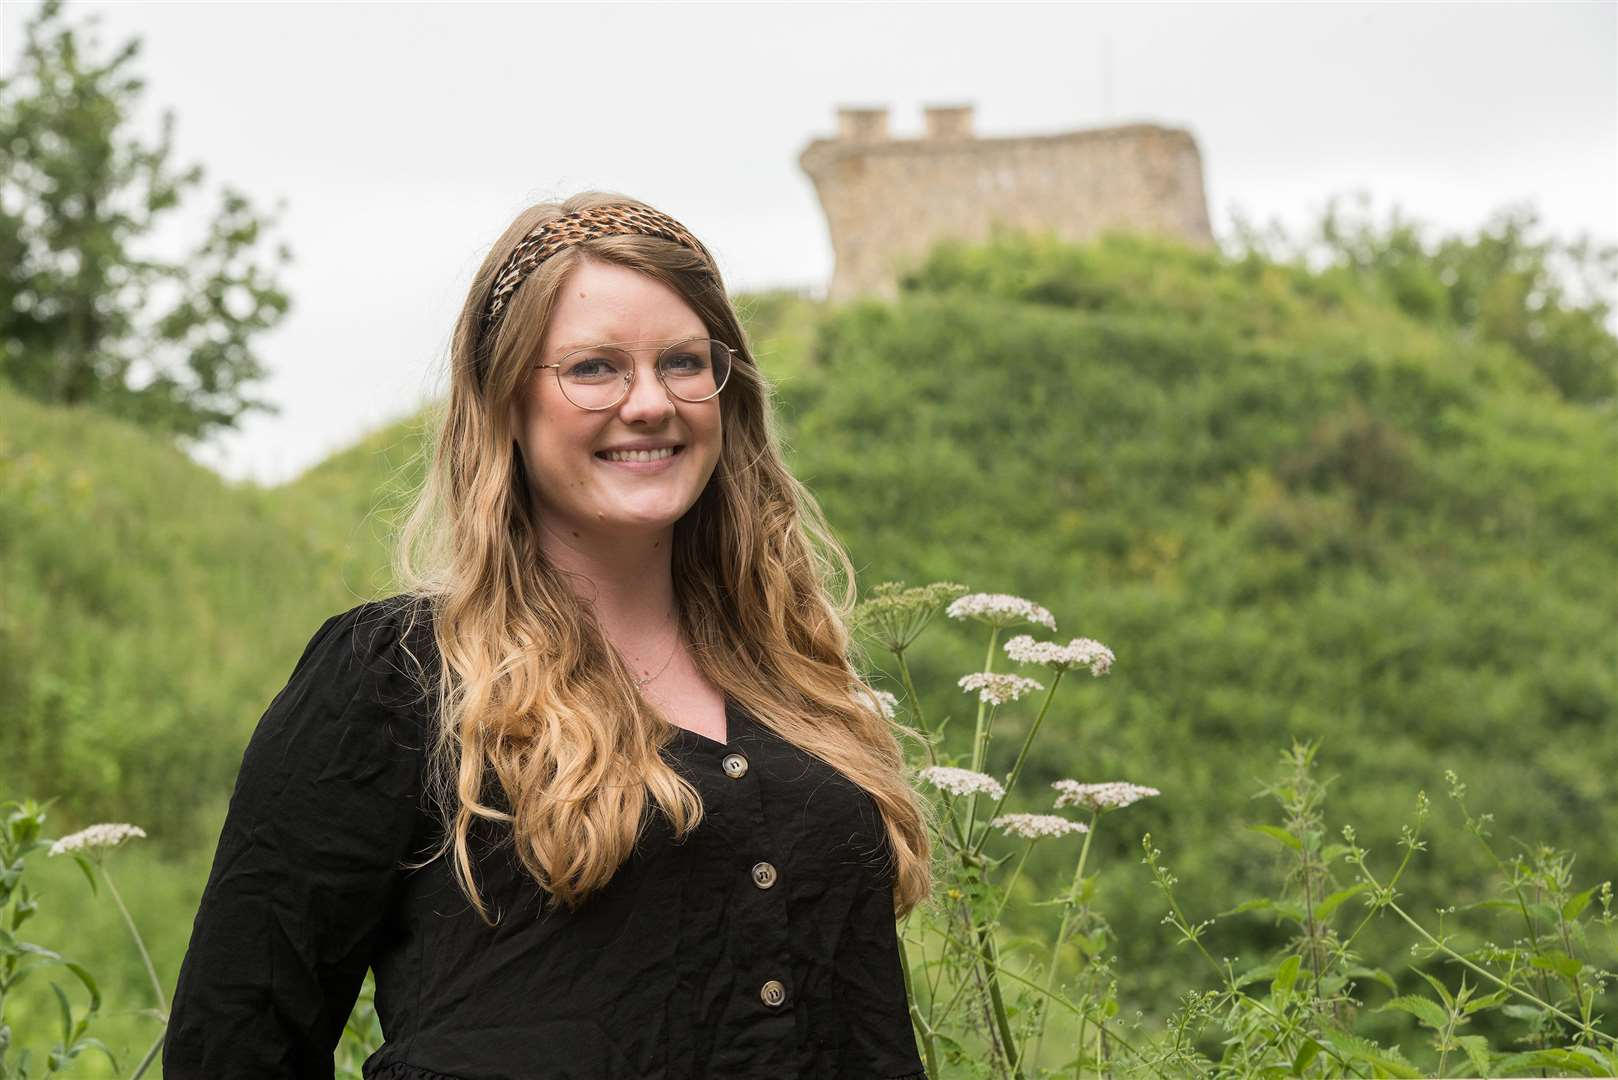 Natalie Tarling is the Volunteer and Community Engagement Manager for Clare Castle Country Park. Picture by Mark Westley.